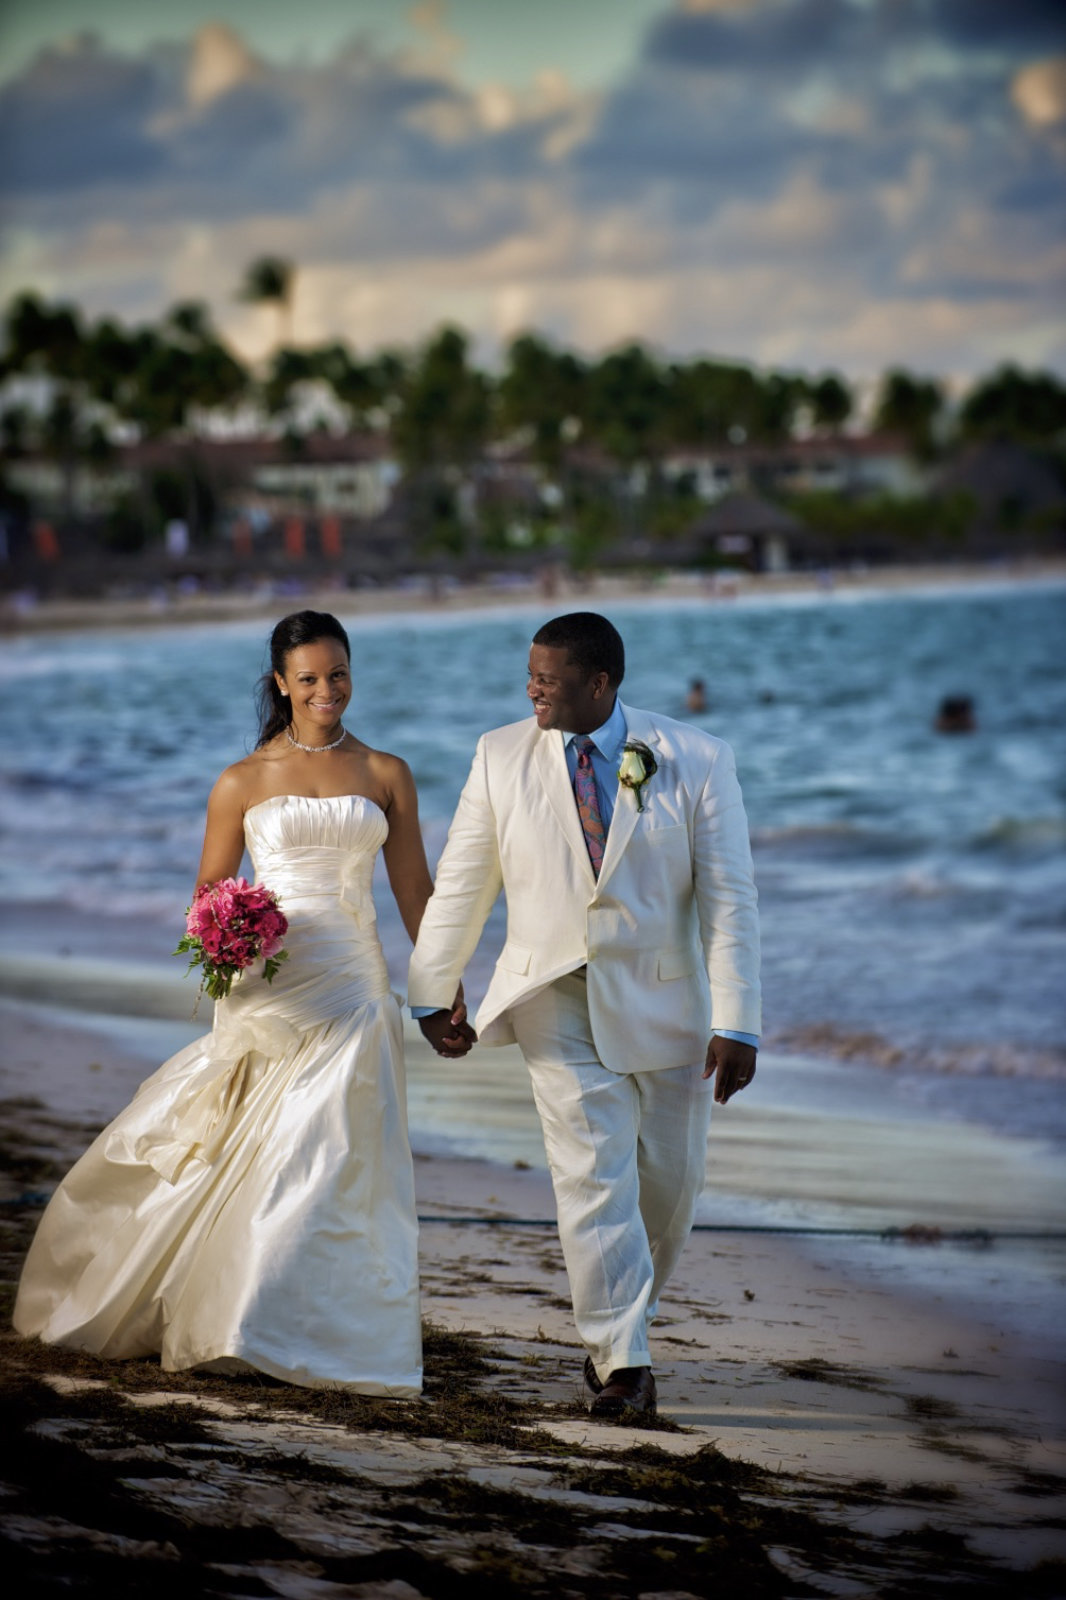 A wedding couple at their destination wedding in the Dominican Republic on the beach